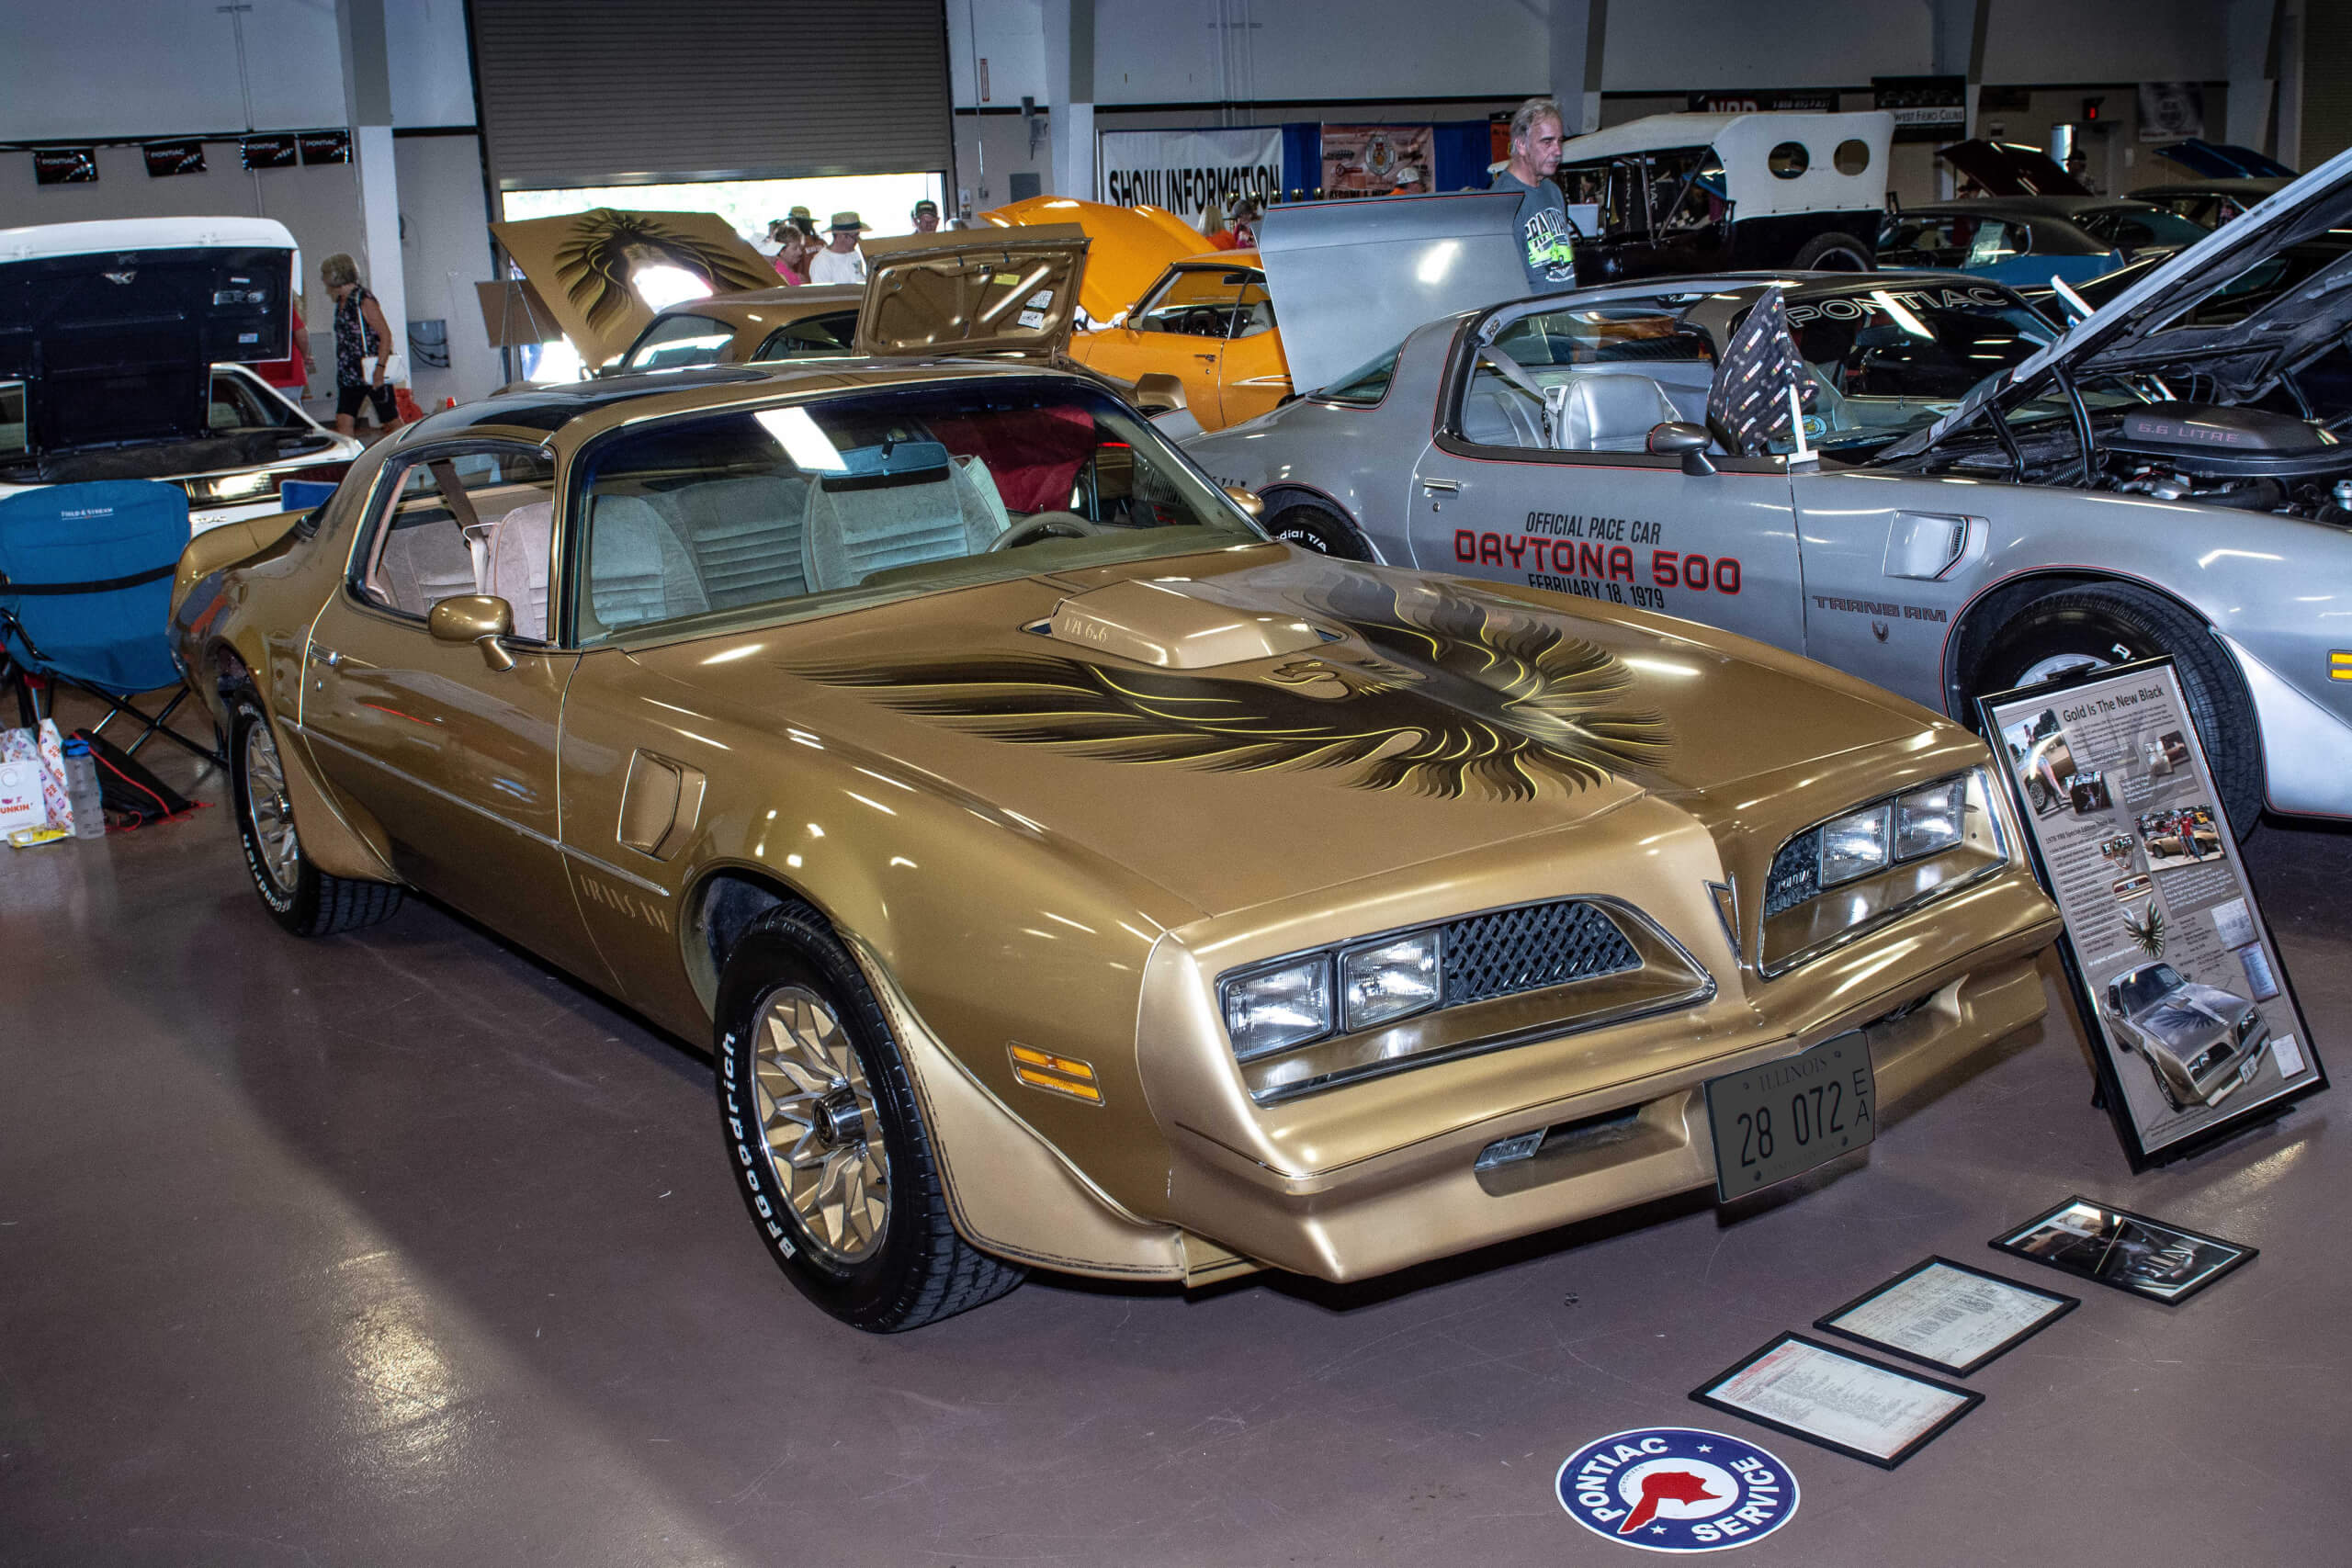 Original Owner Trans Am, and Pontiac Passion, Passes from  Dad to Daughter